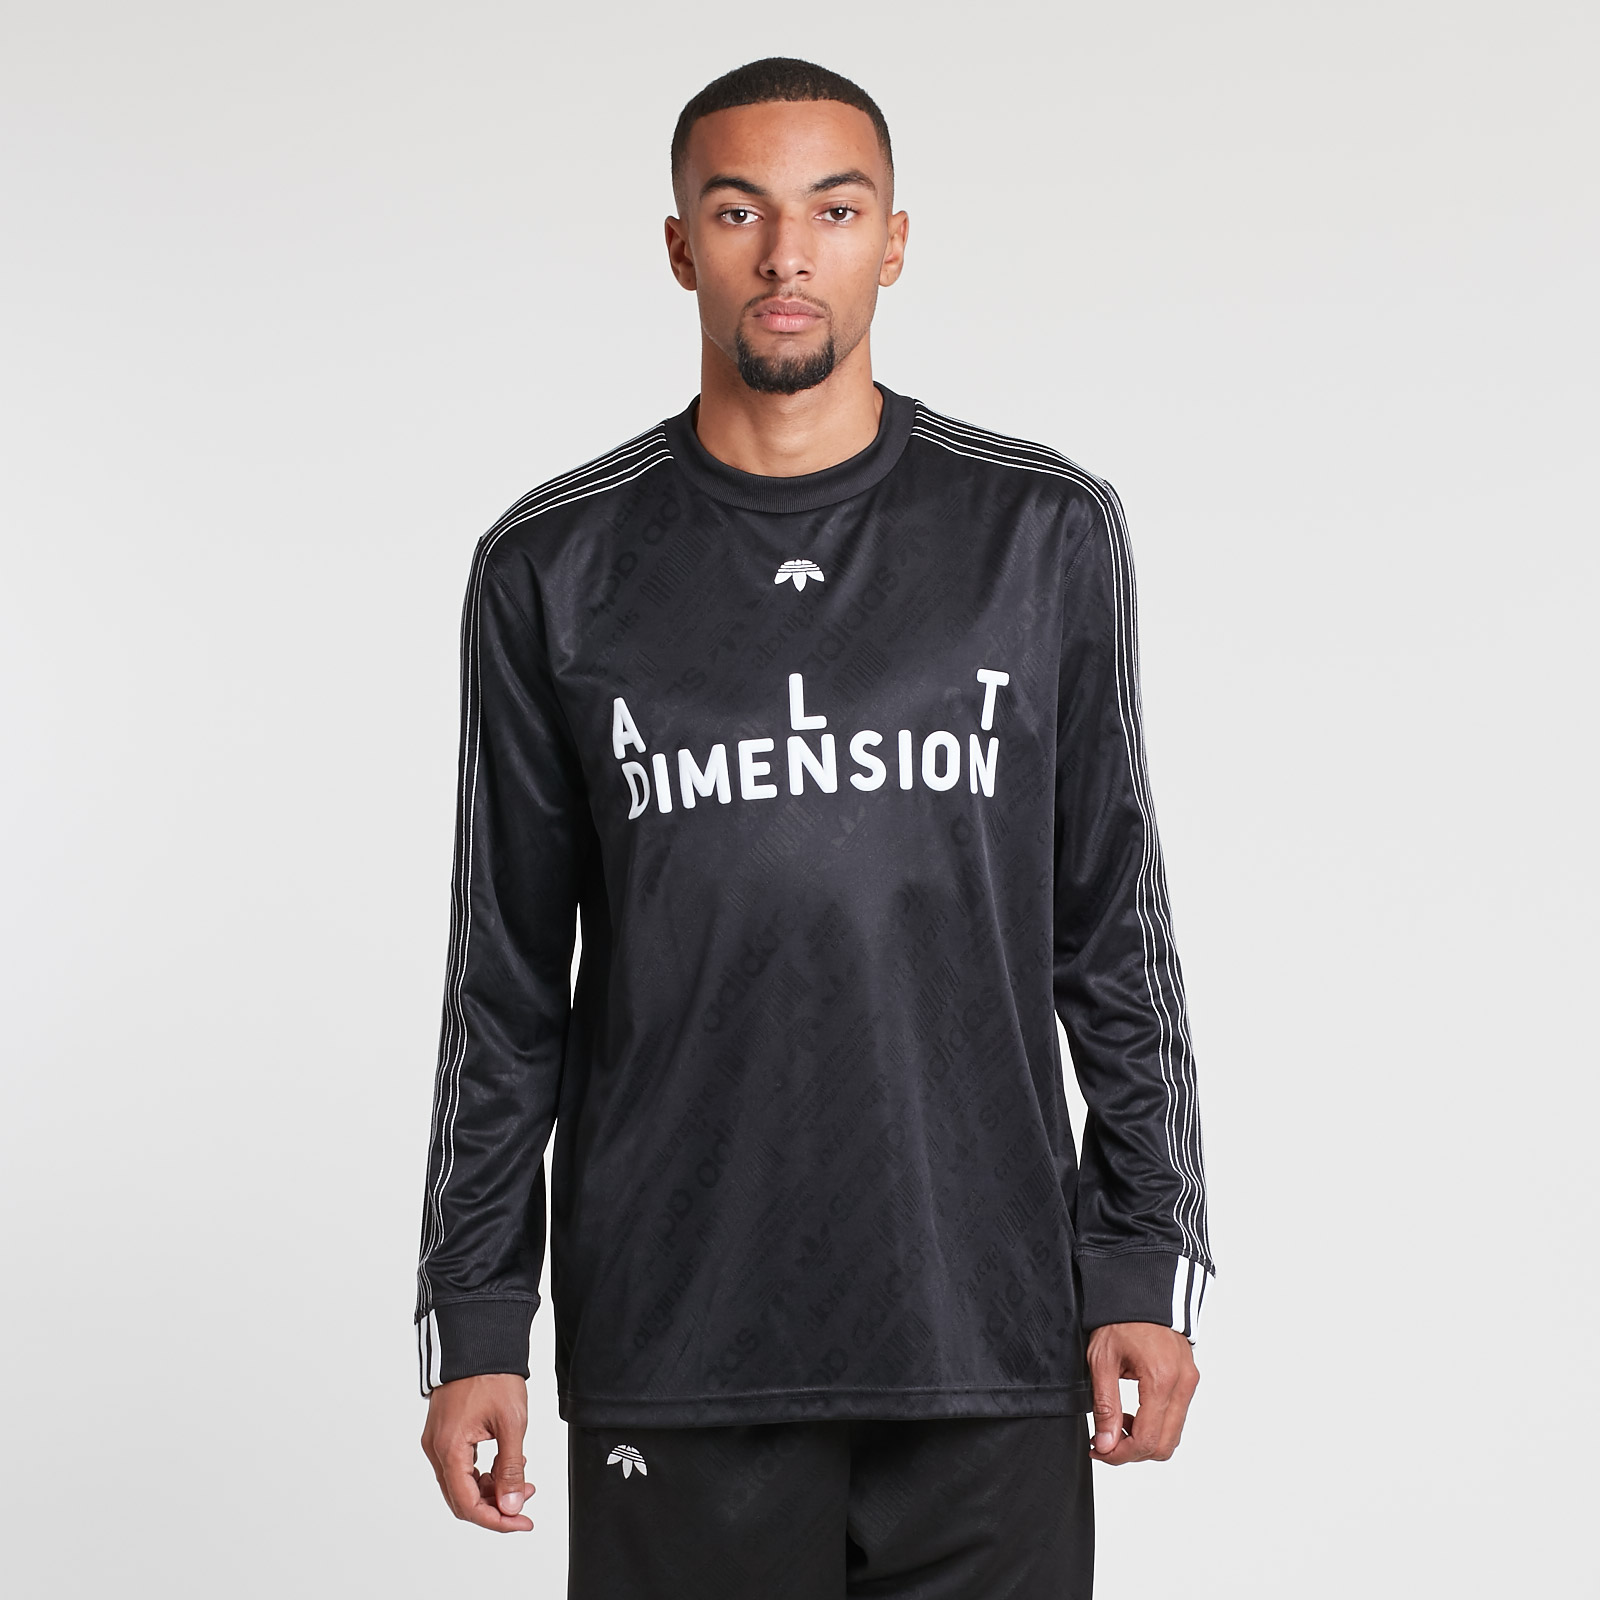 Long SneakersnstuffSneakers Adidas Sleeve Soccer Cw0505 MpqUVSzLG